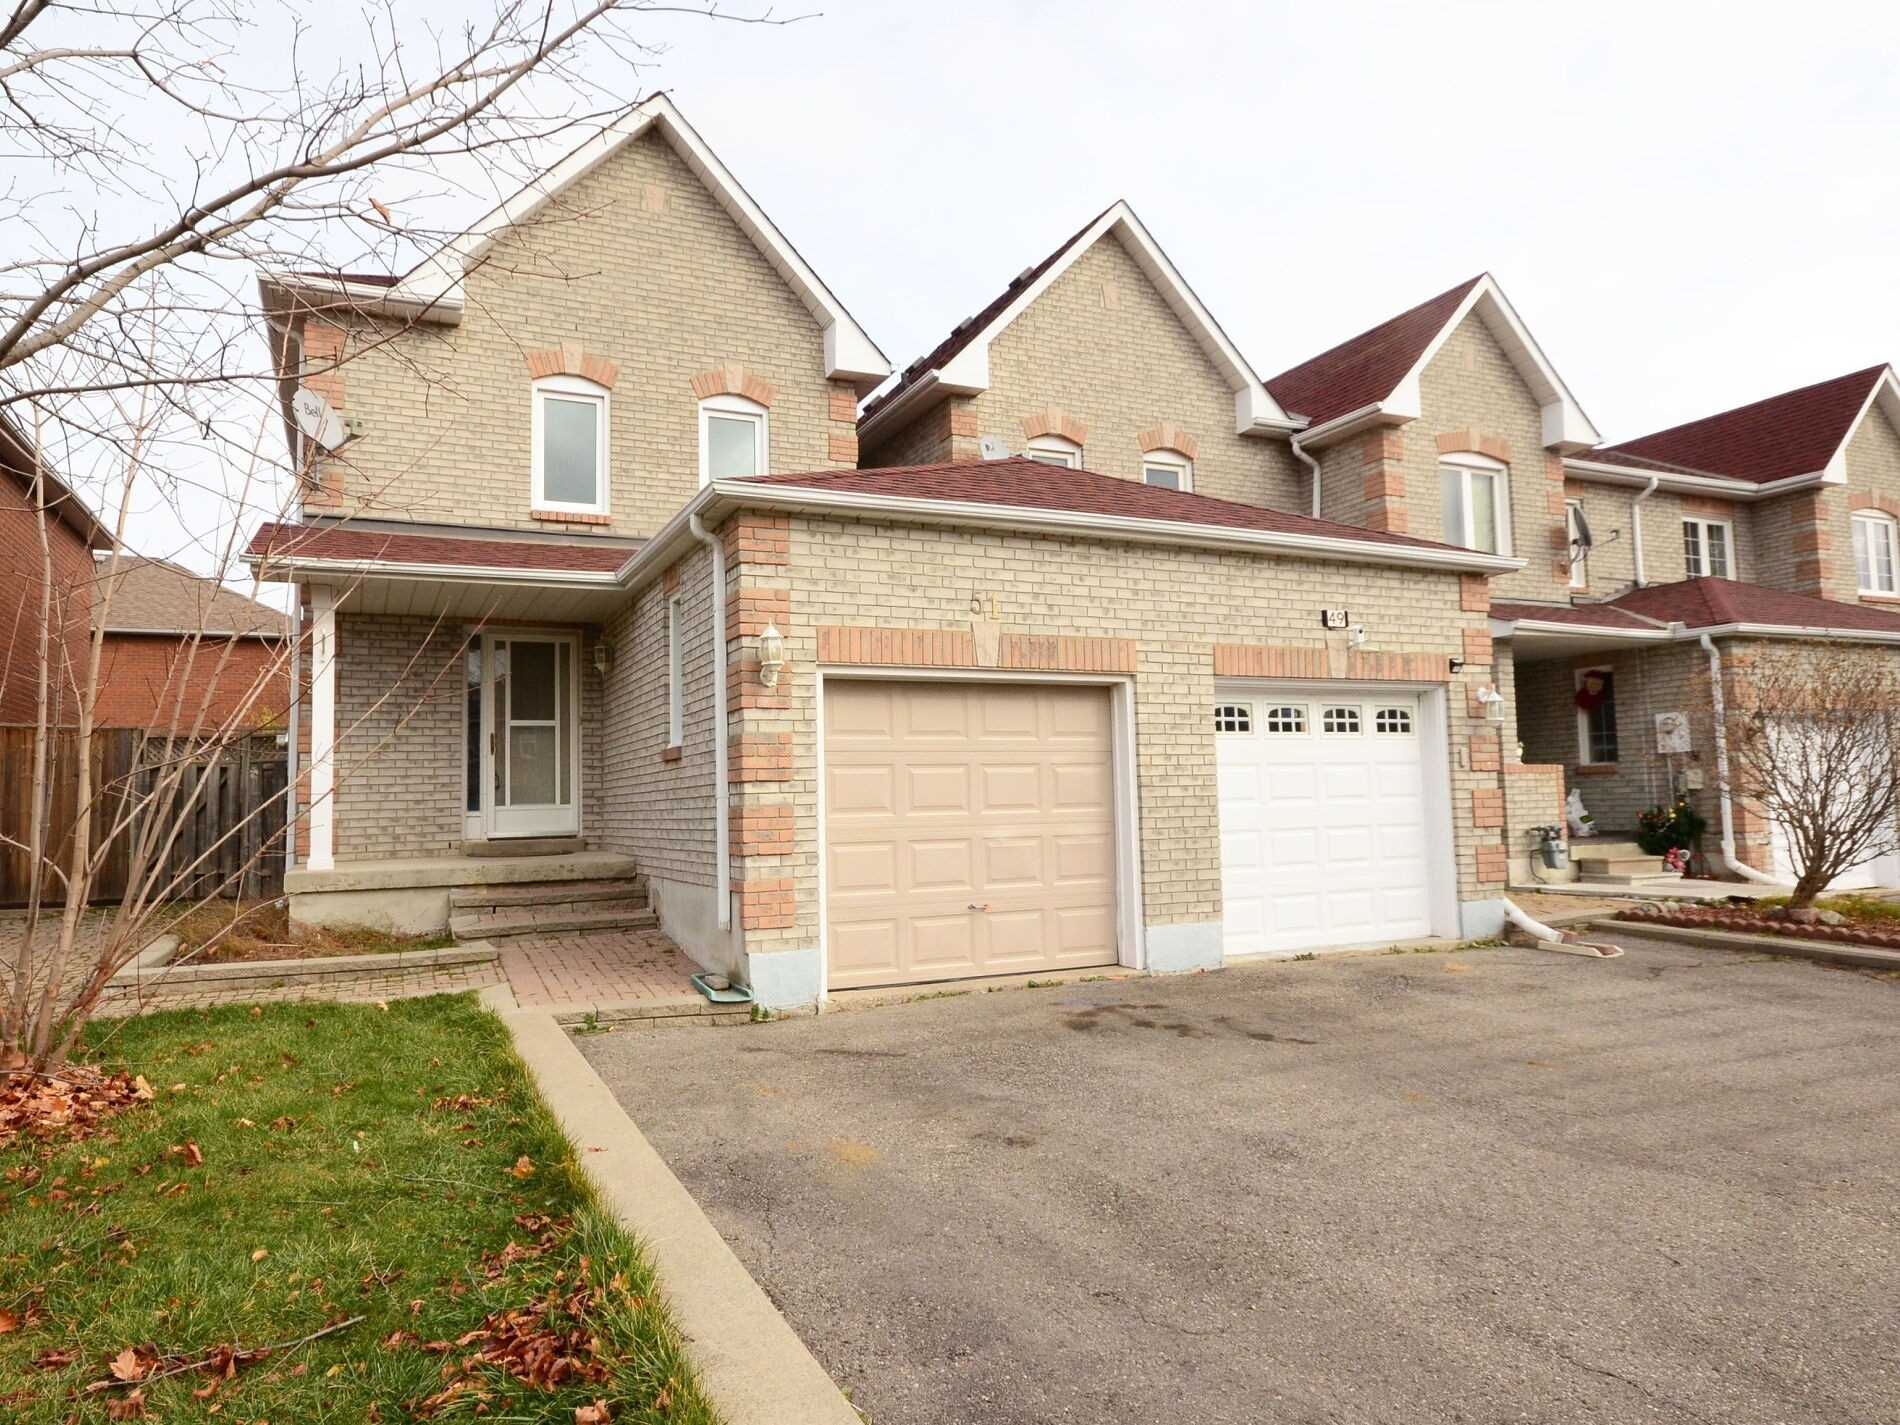 For Sale: 51 Muirland Crescent, Brampton, ON | 3 Bed, 3 Bath Townhouse for $629888.00. See 40 photos!